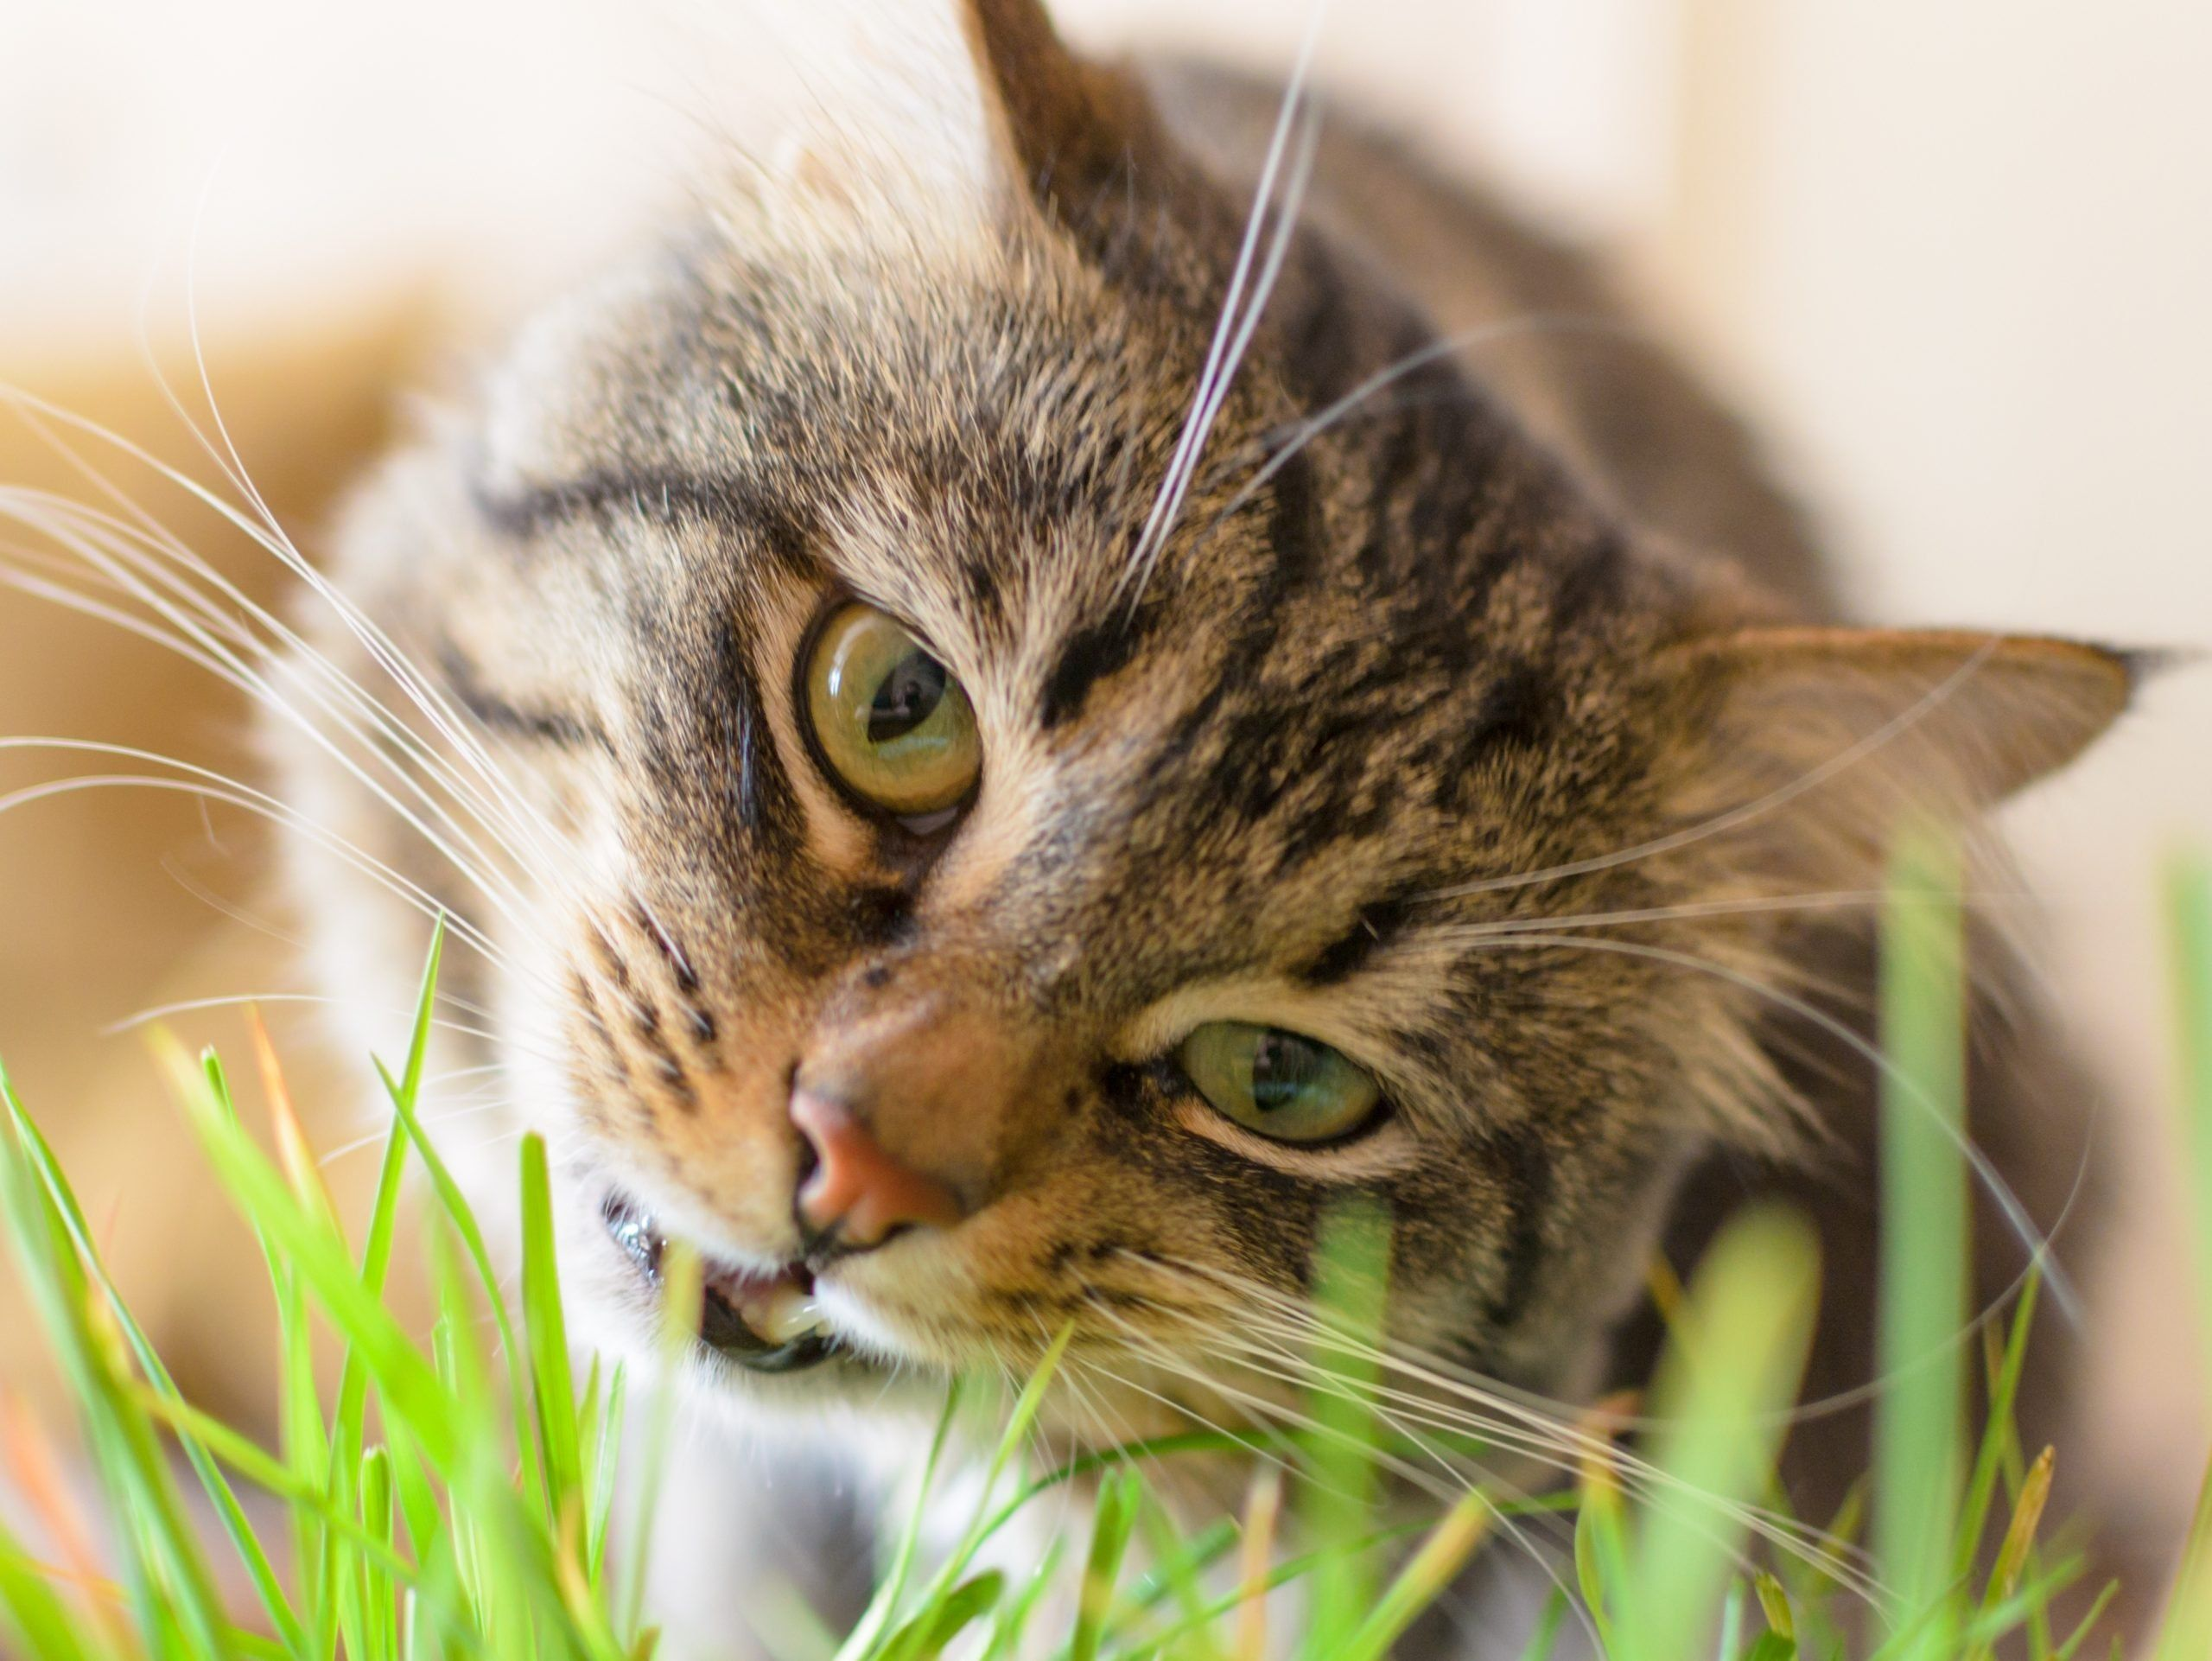 Why Do Cats Eat Grass In 2020 Cat Eating Grass Cats Cute Cats